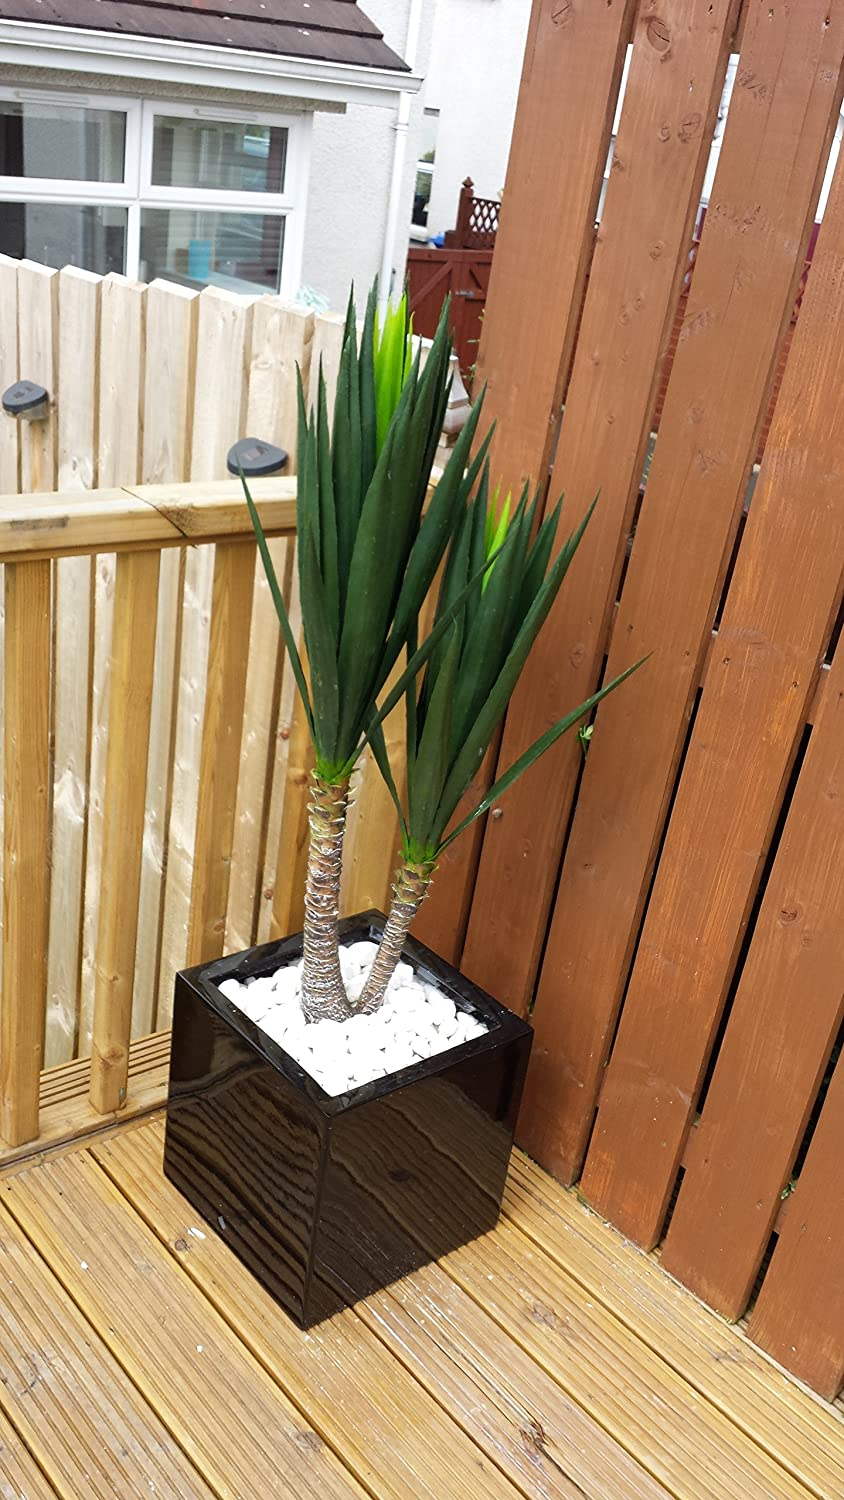 Best Artificial 120cm 4ft Double Yucca Plant Outdoor Indoor Office Conservatory Tropical Garden Tree (1)